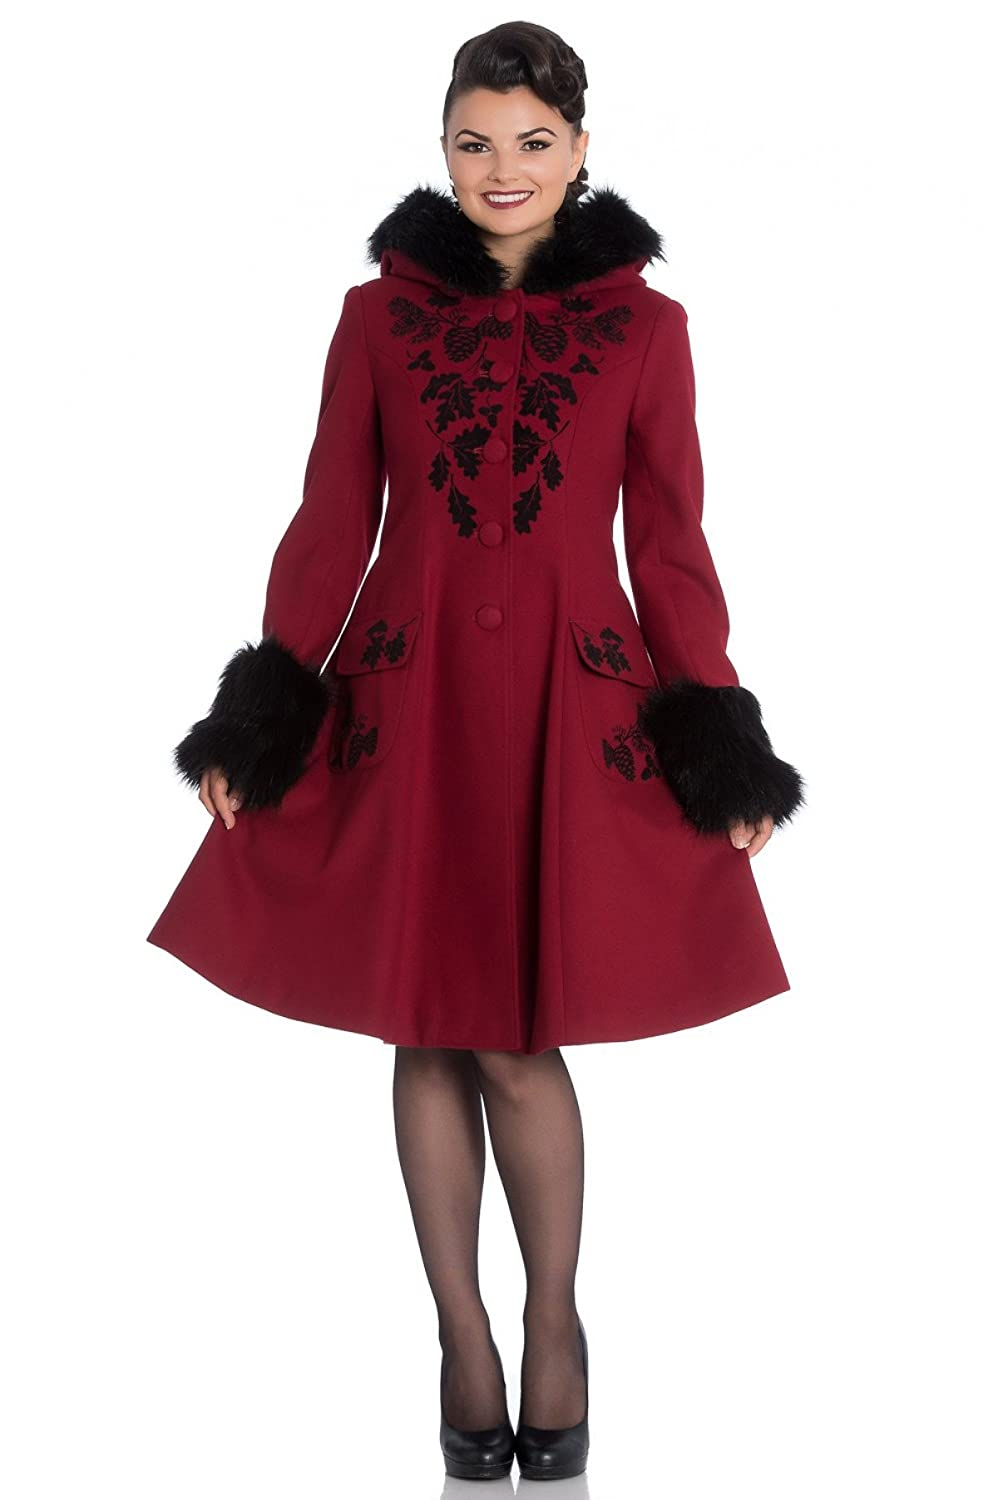 Vintage Coats & Jackets | Retro Coats and Jackets Hell Bunny Sherwood Victorian 3/4 Length Swing Coat Red  AT vintagedancer.com